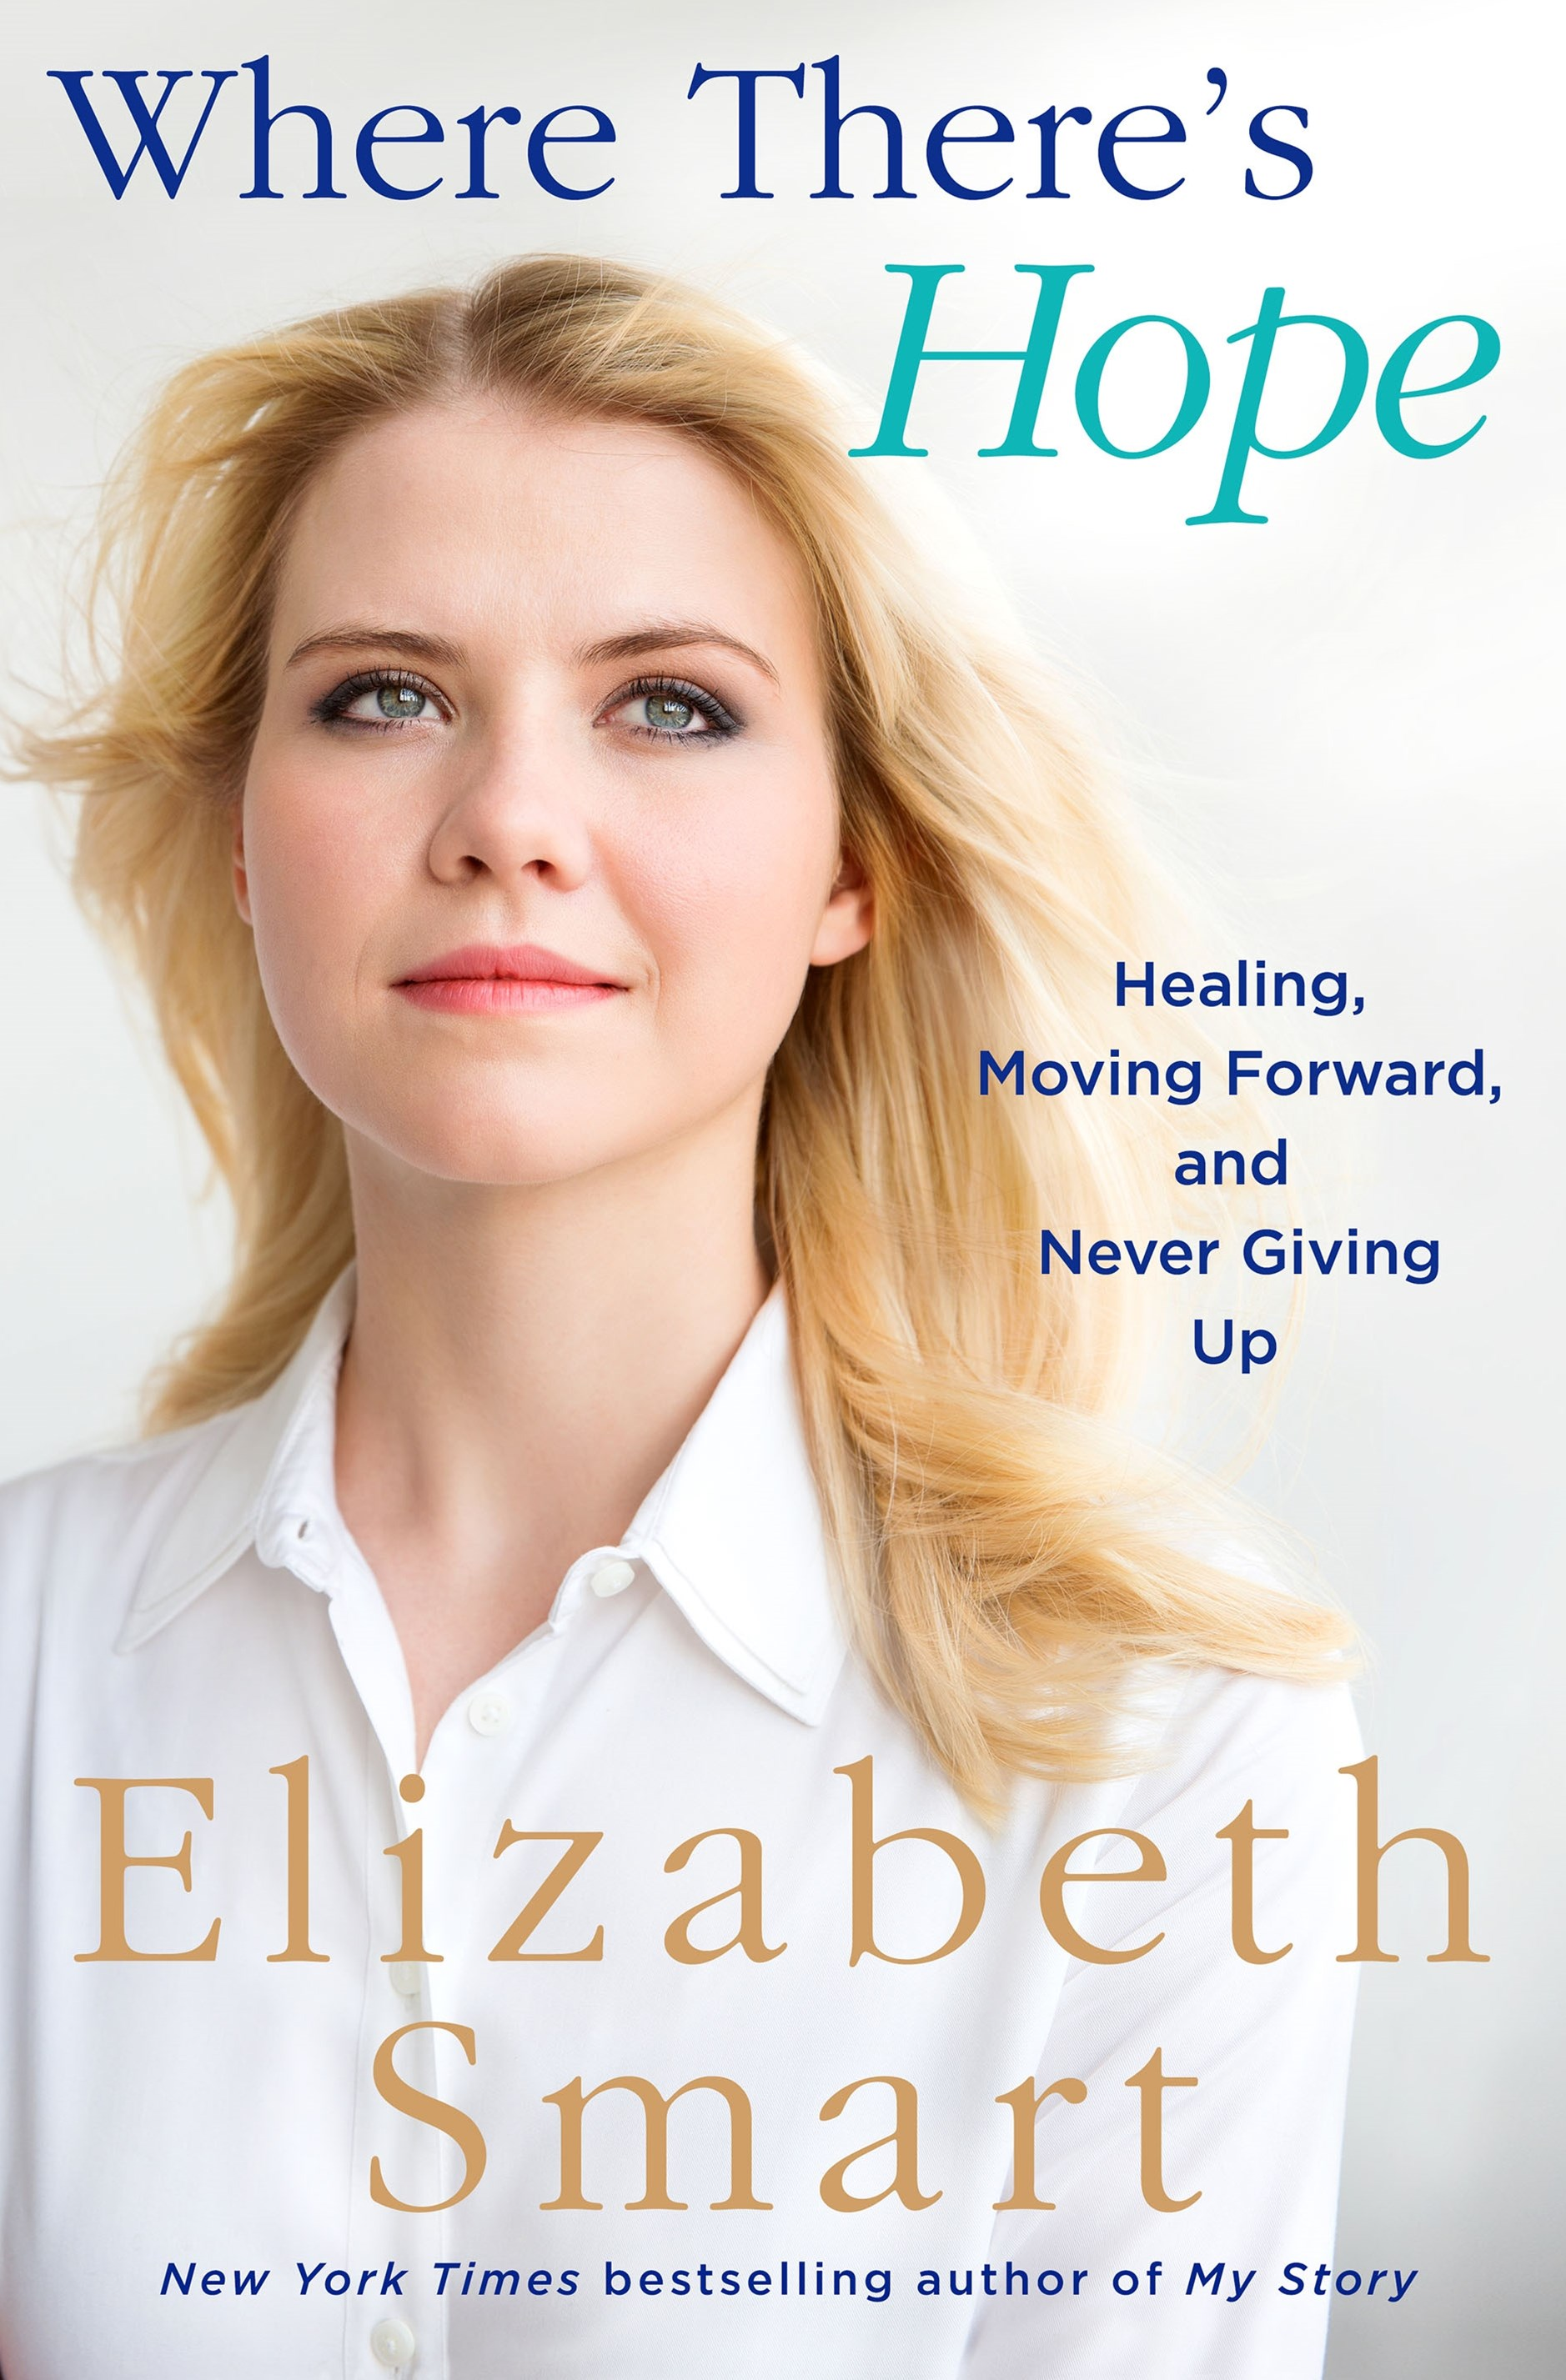 Where There's Hope:Healing, Moving Forward, and Never Giving Up